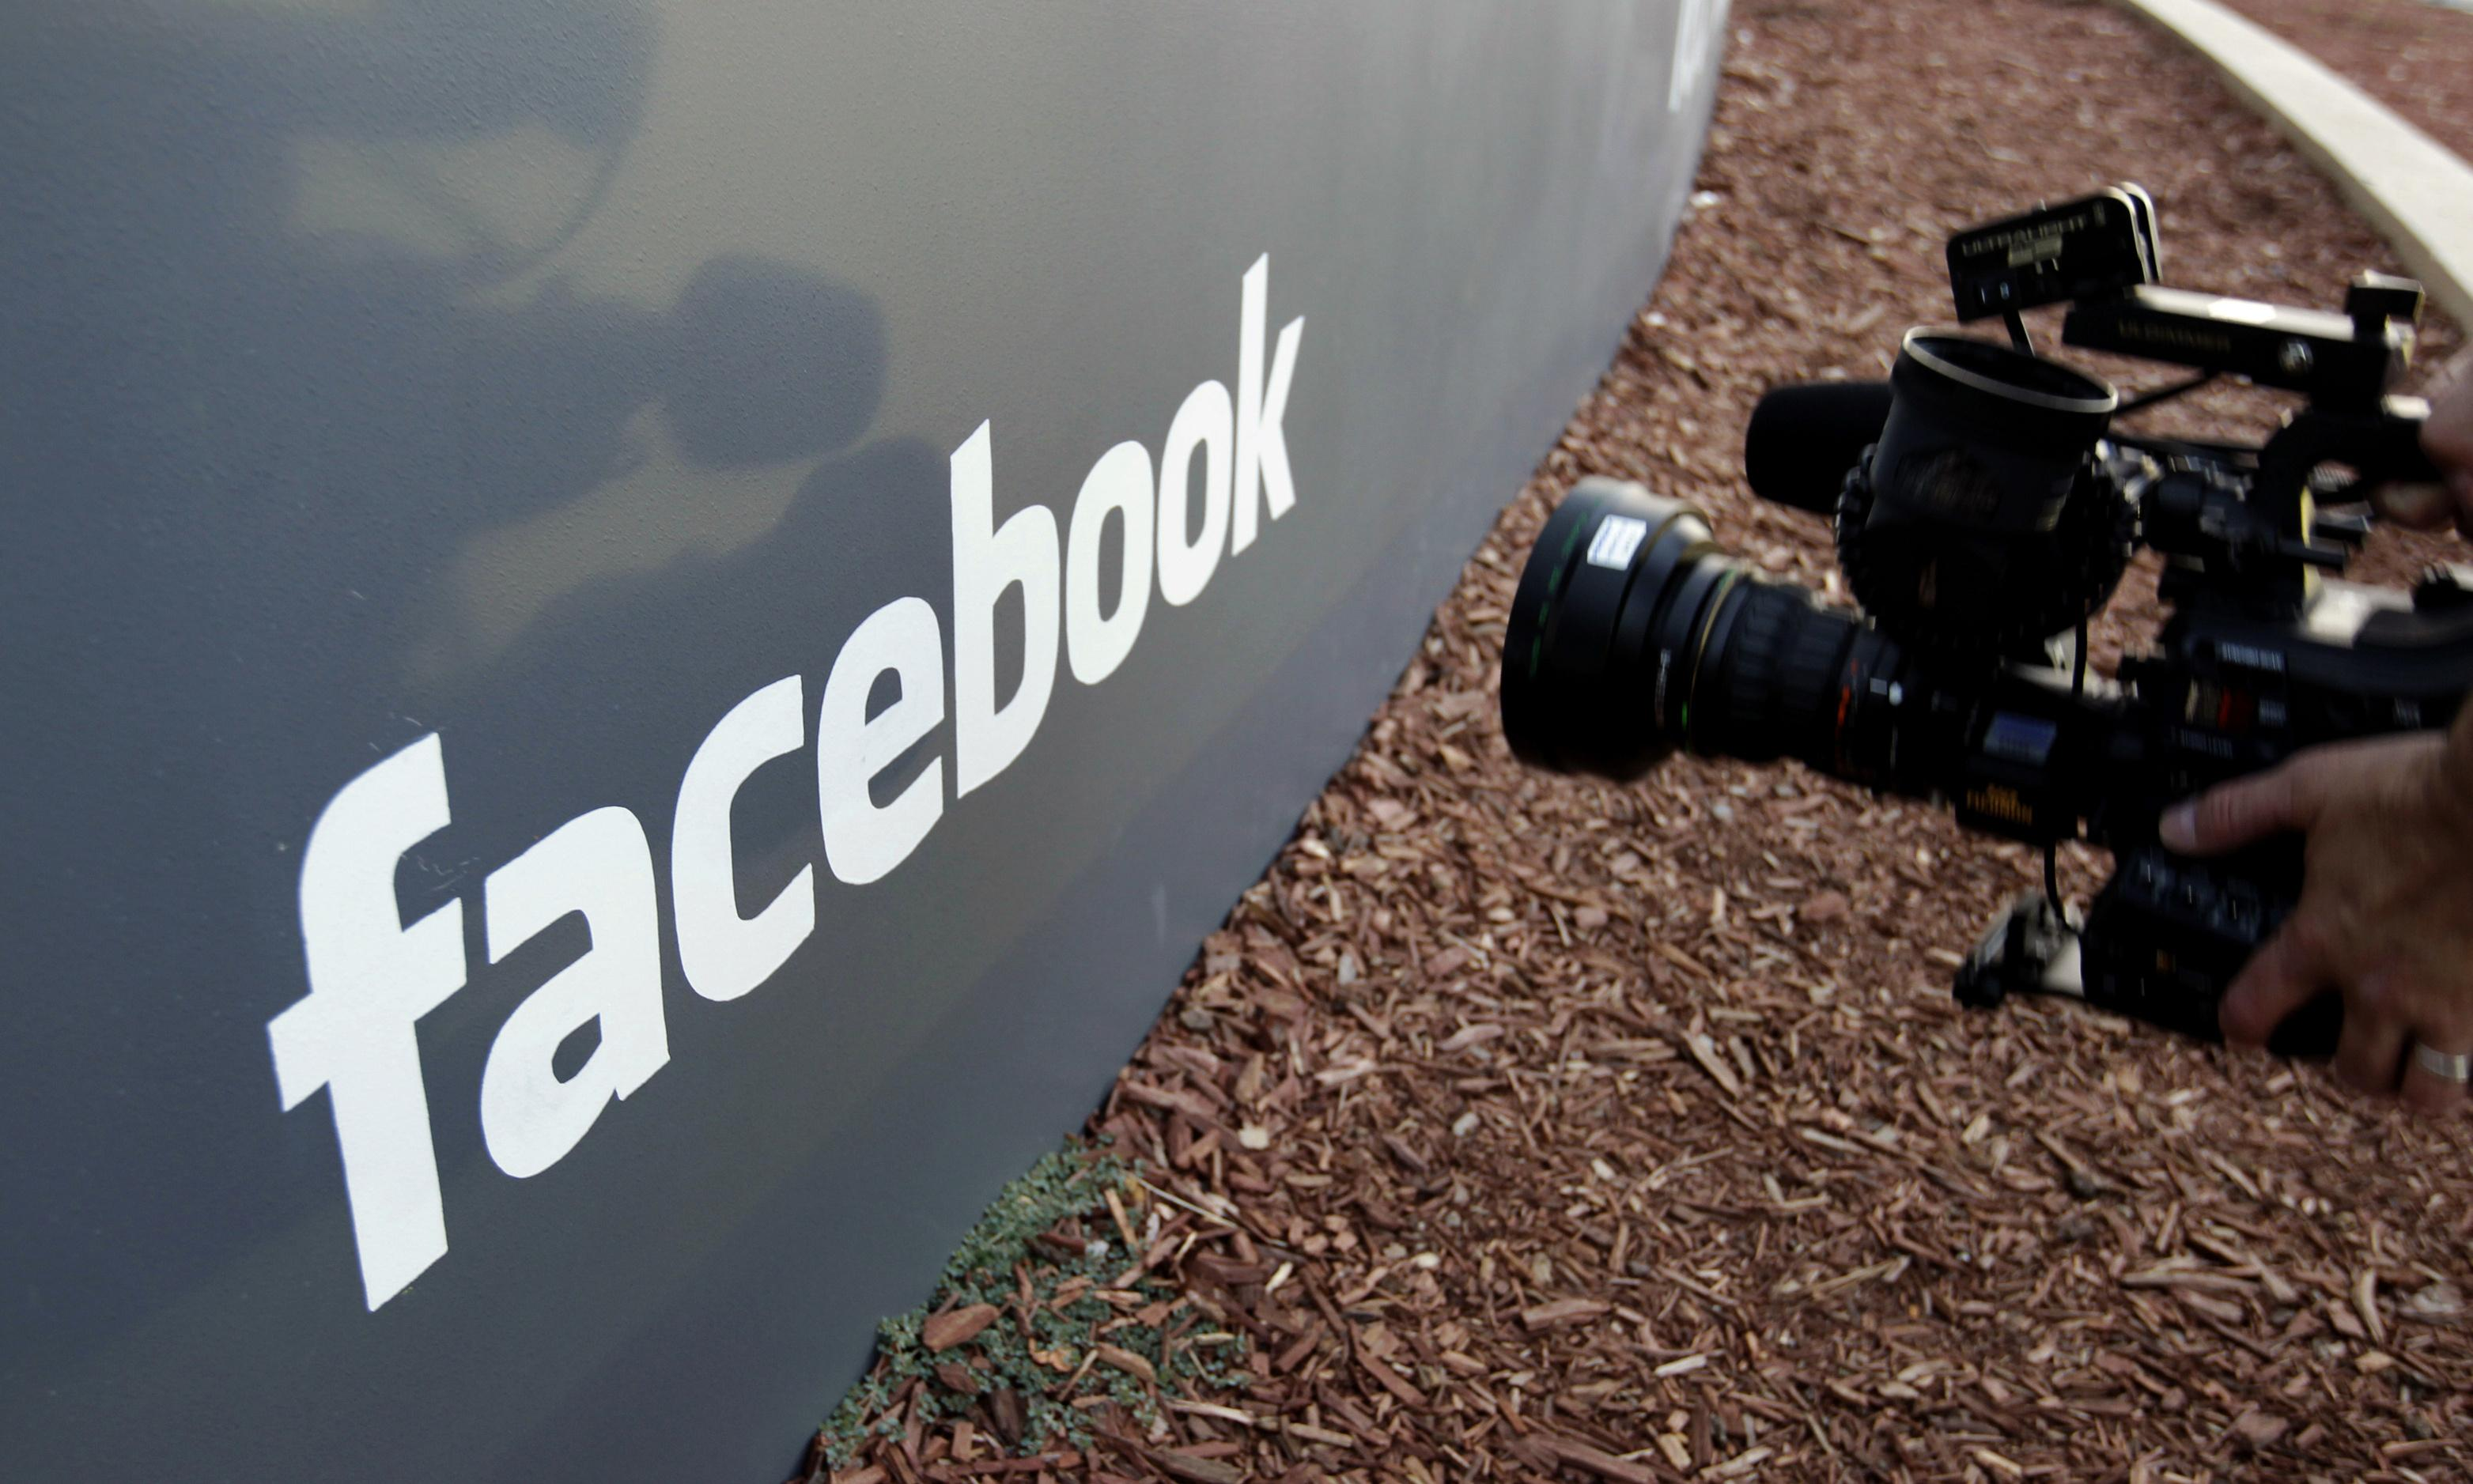 French Muslim group suing Facebook over Christchurch video